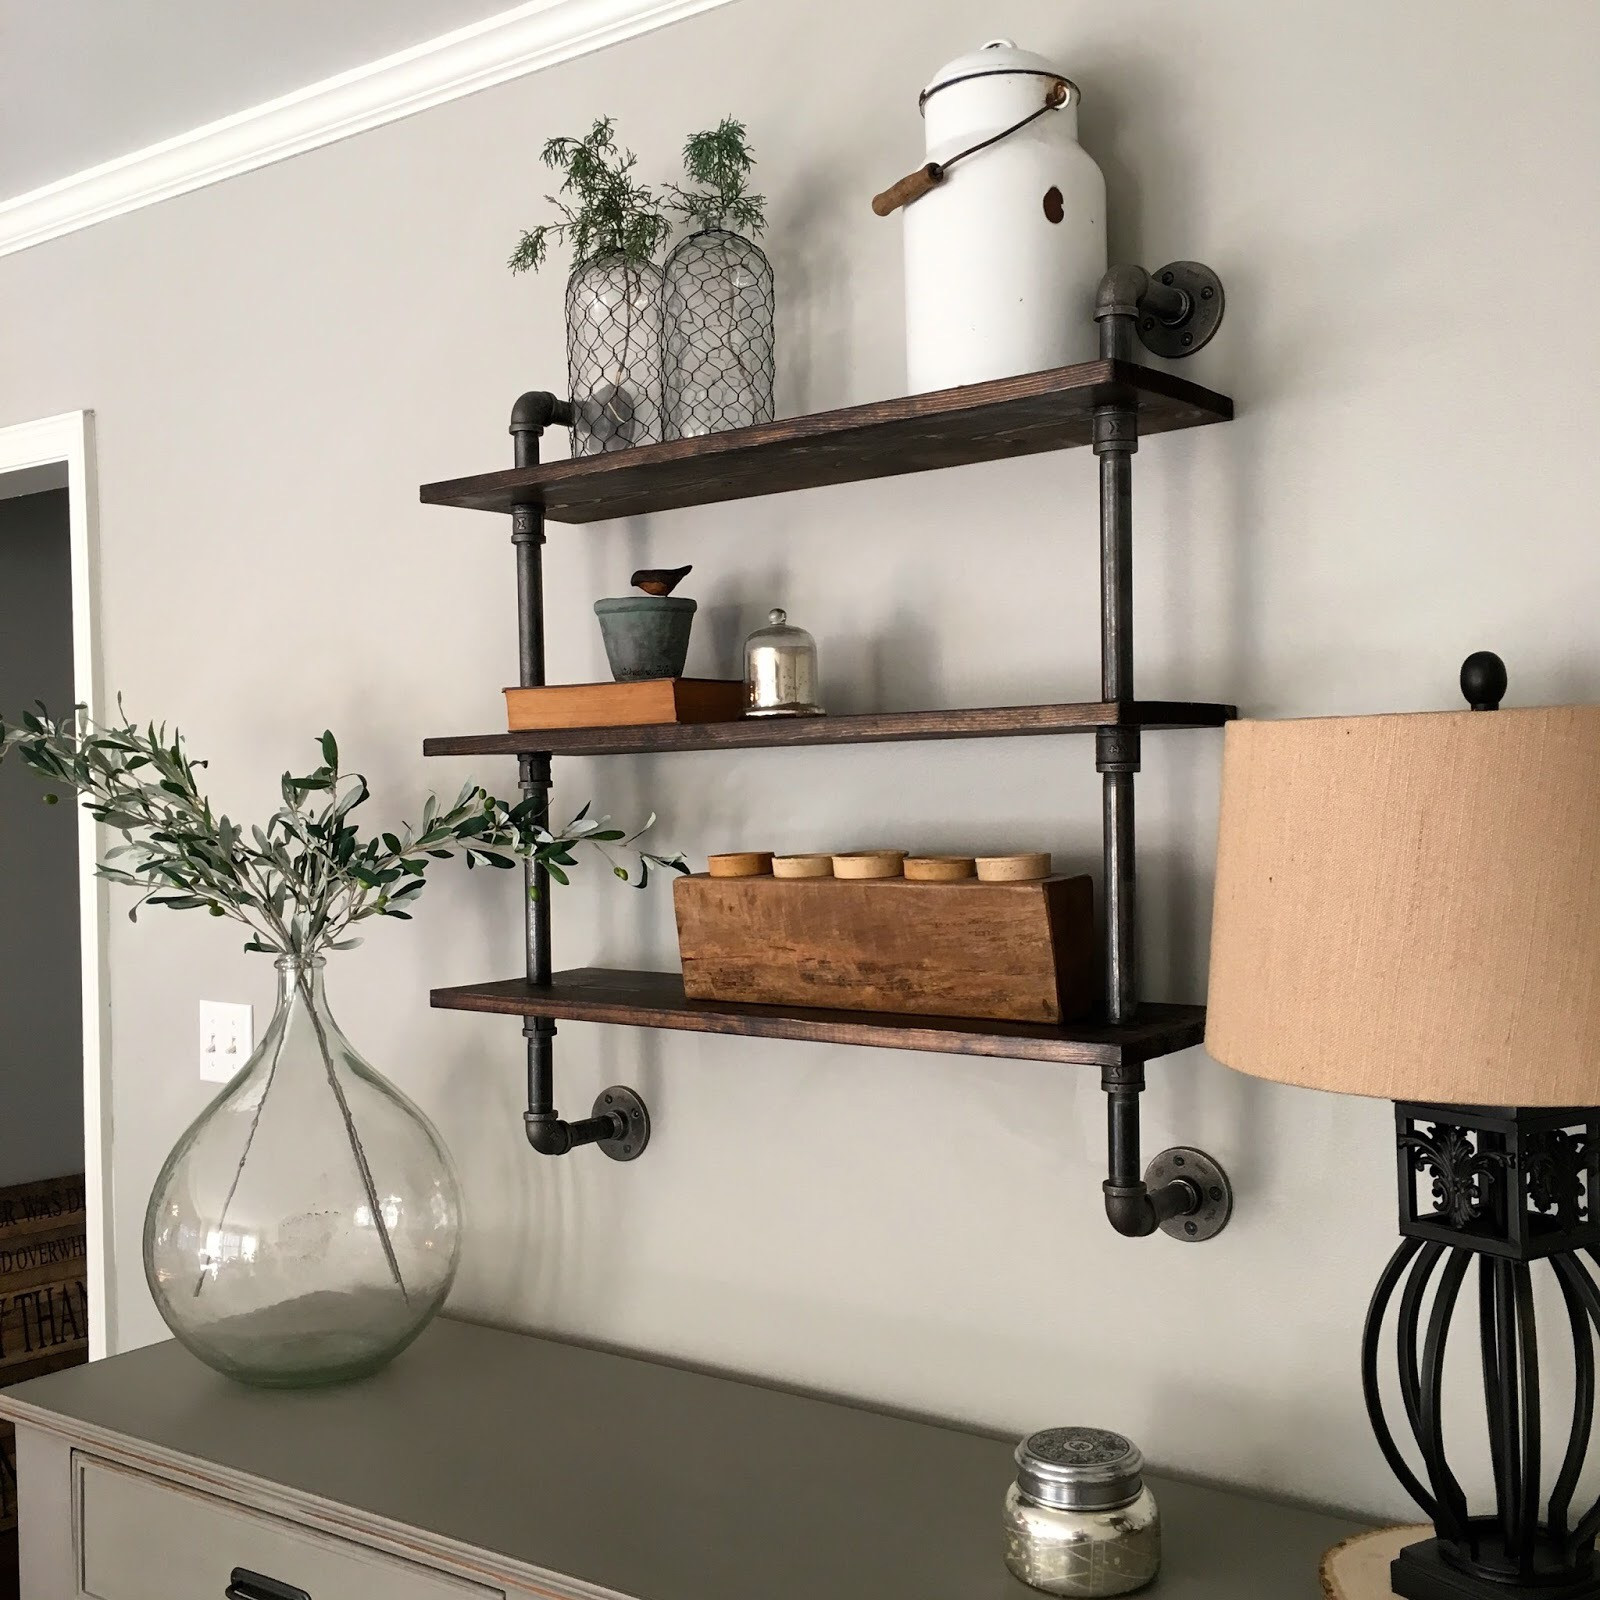 Best ideas about Pipe Shelves DIY . Save or Pin DIY Pipe Shelving Mindfully Gray Now.